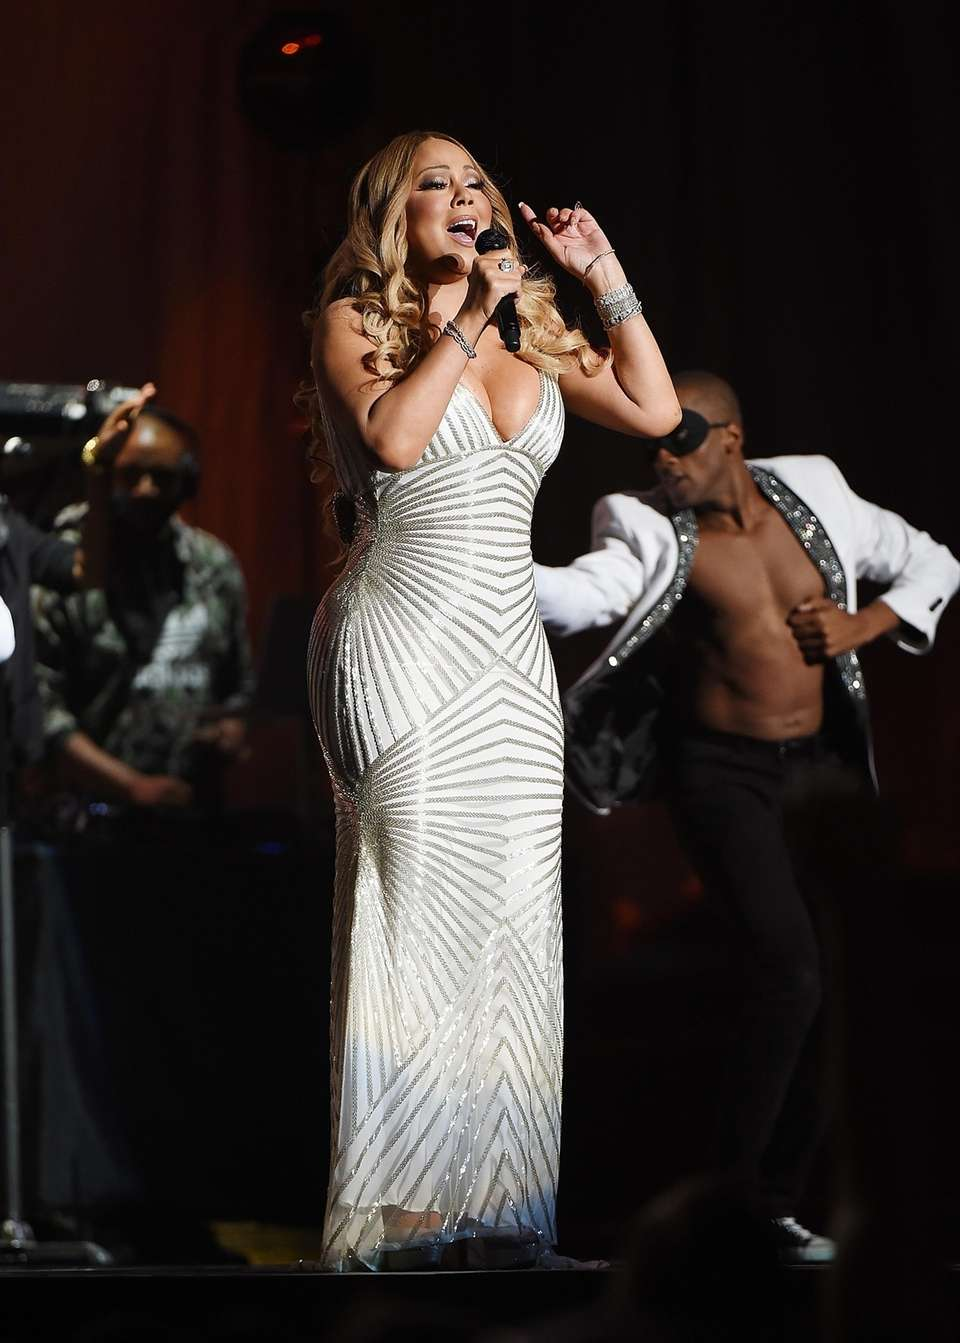 Mariah Carey performing at Madison Square Garden in